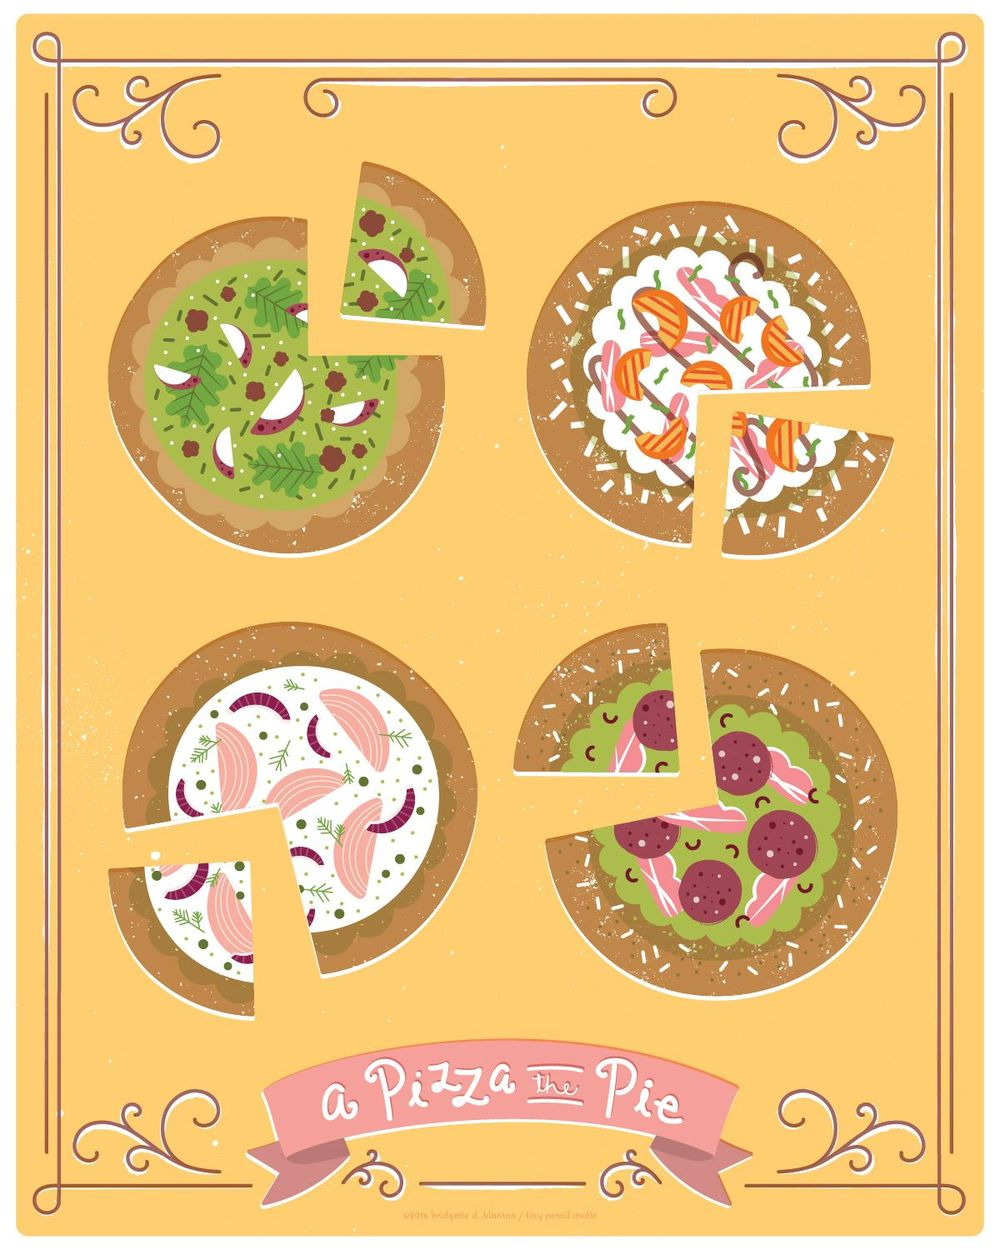 A Pizza the Pie - image 1 - student project